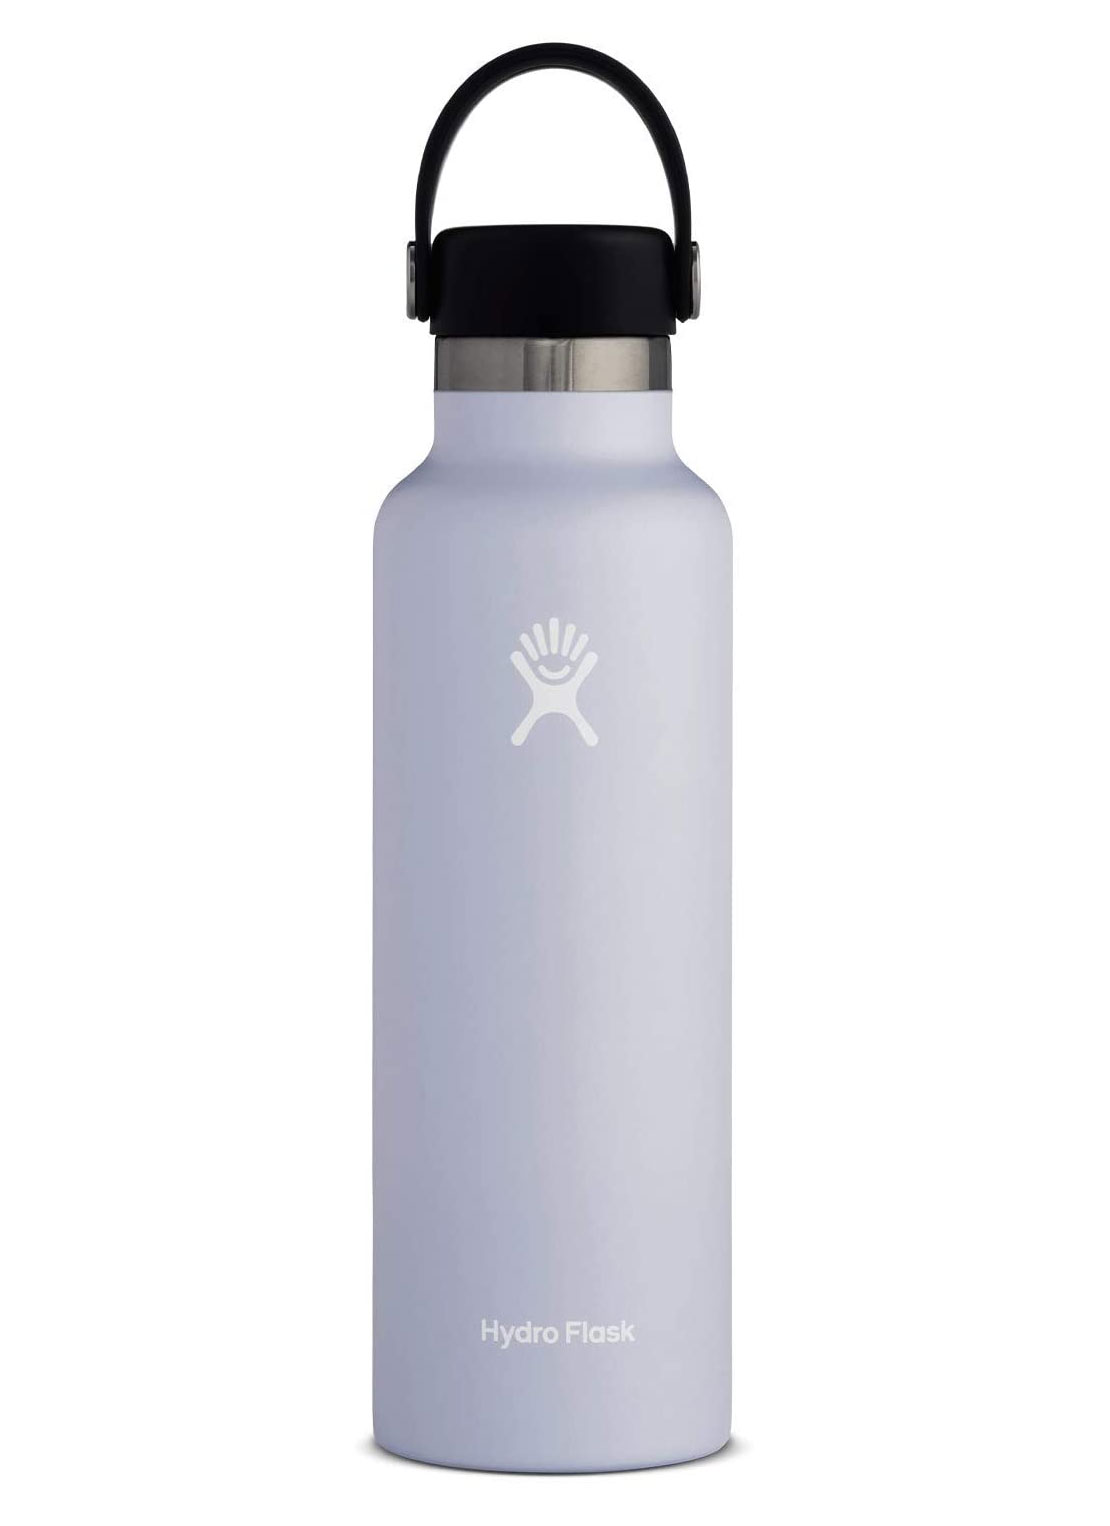 Gifts for women and for her - Hydro Flask Standard Mouth Bottle